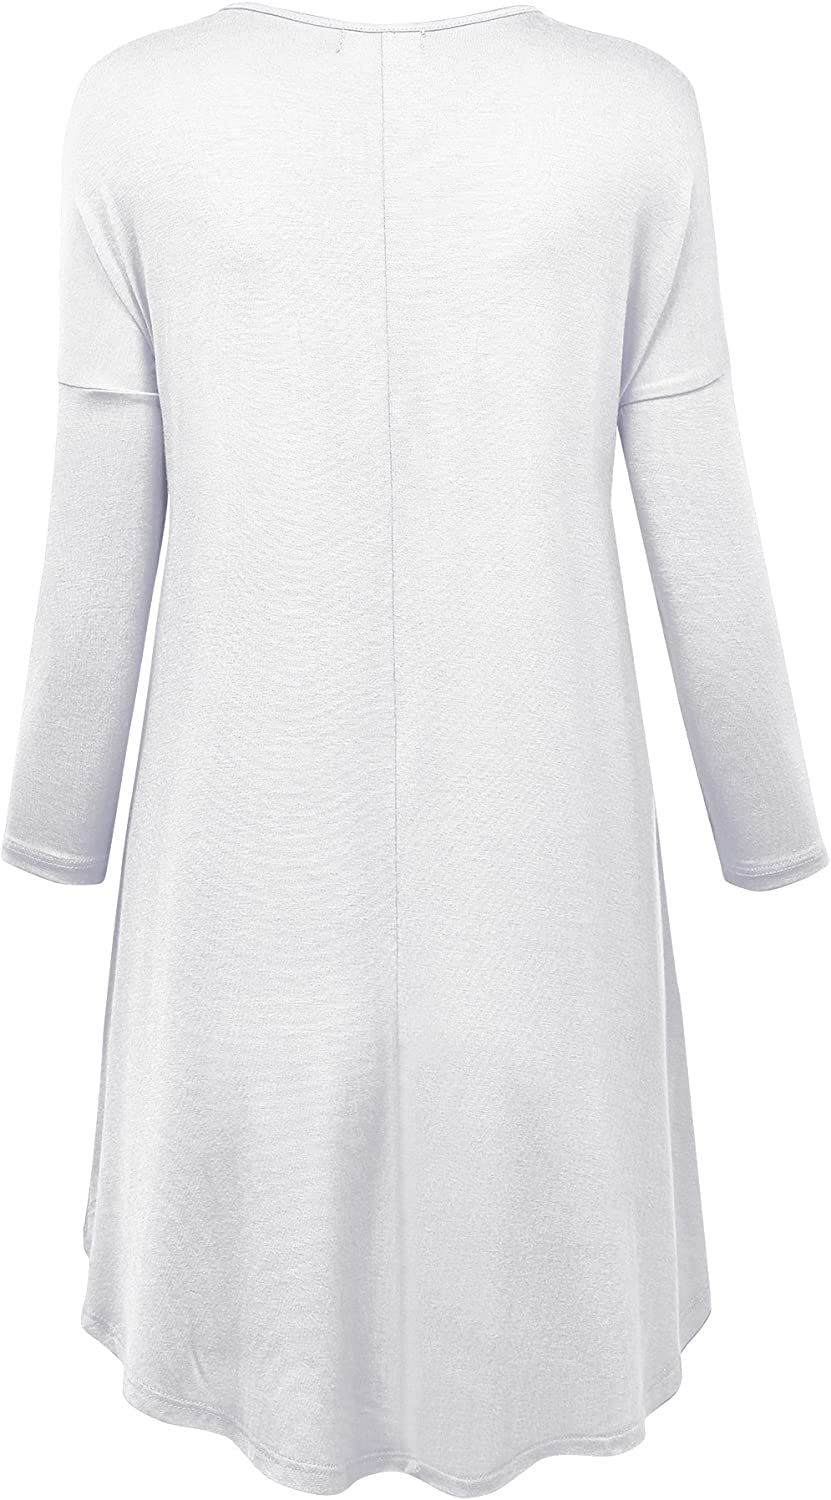 Made in USA MBJ Womens Oversized High Low Tunic